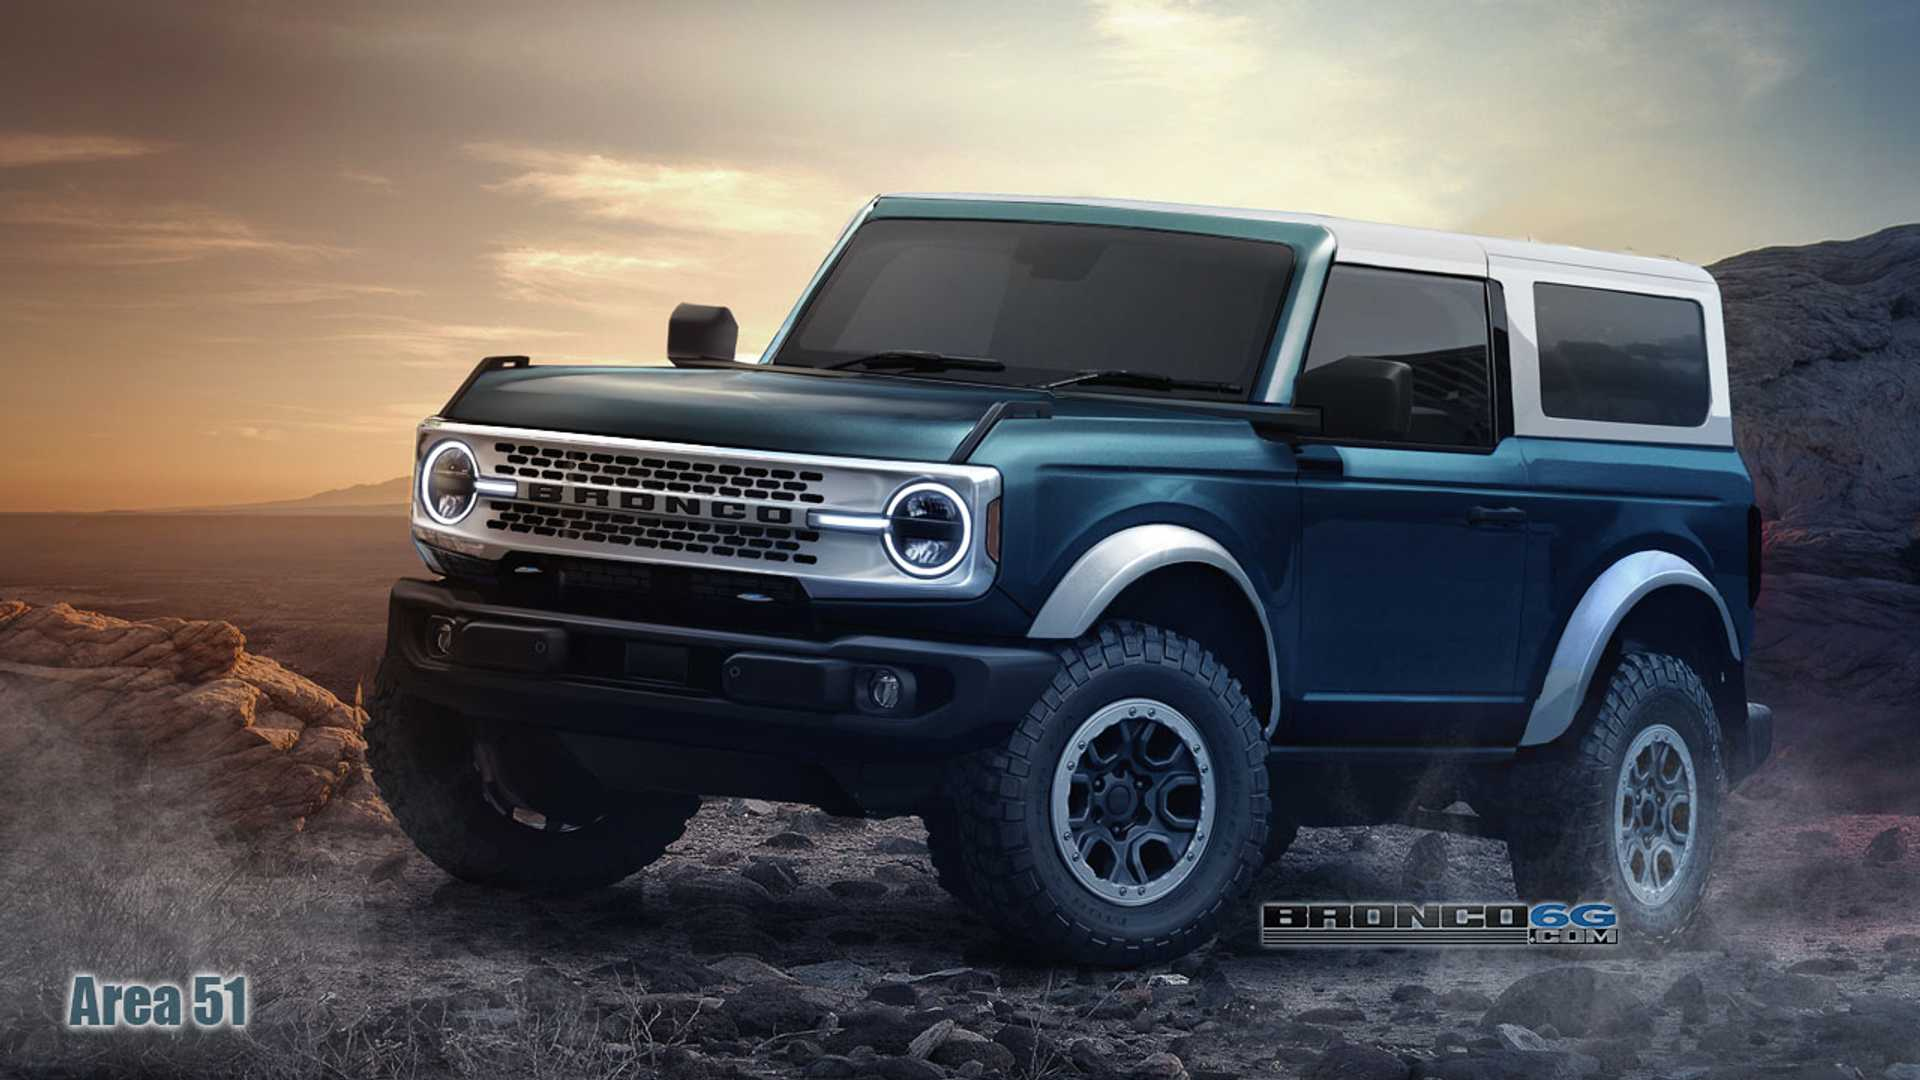 2021 Ford Bronco Renderings Show Off Colors In 2-, 4-Door